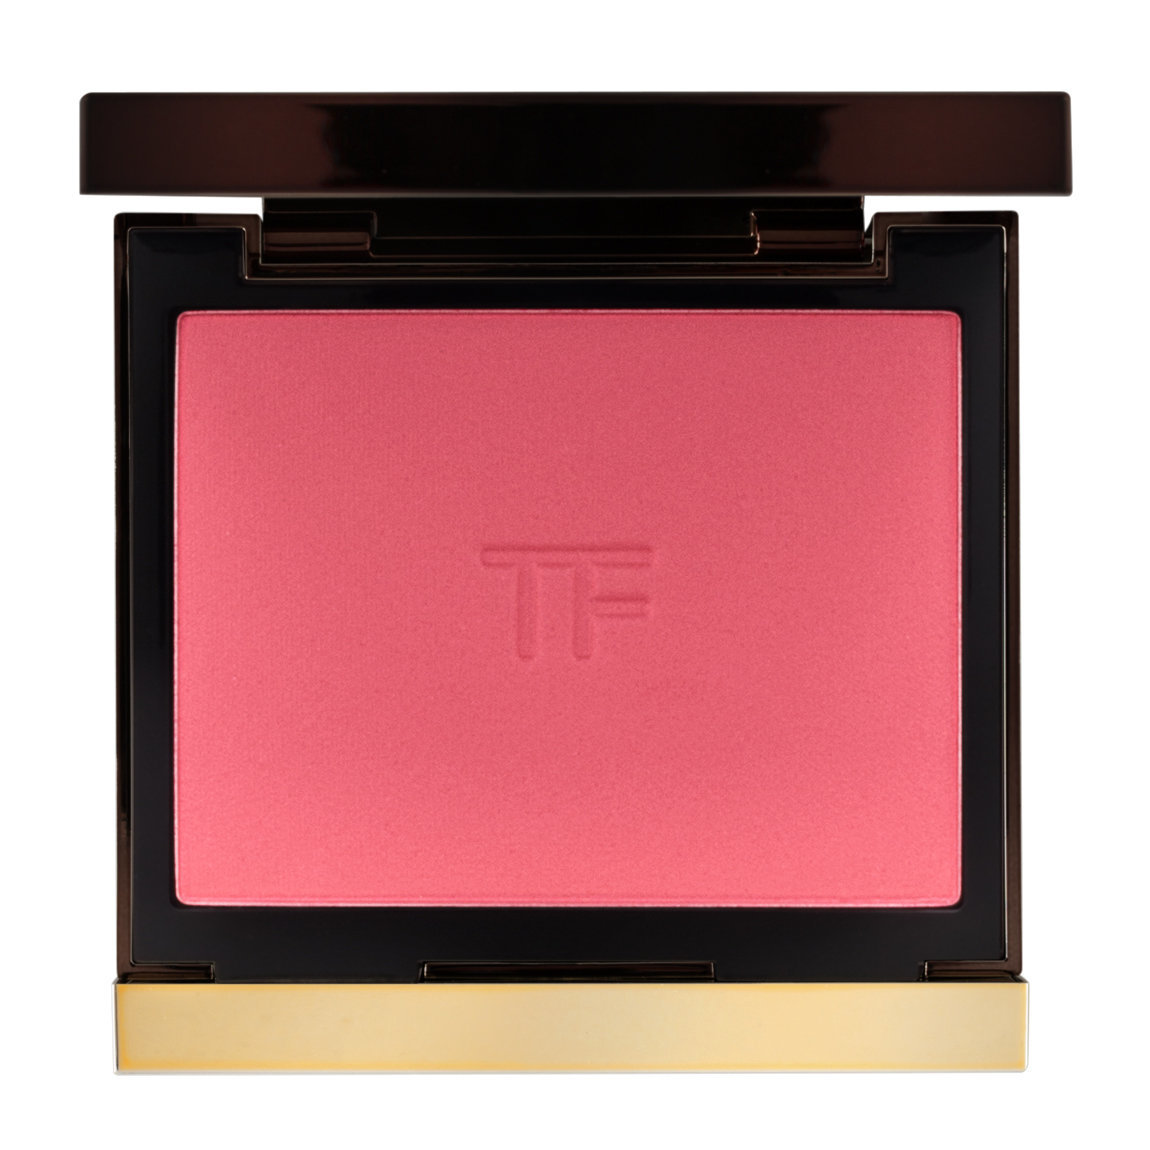 TOM FORD Cheek Color Flush product smear.